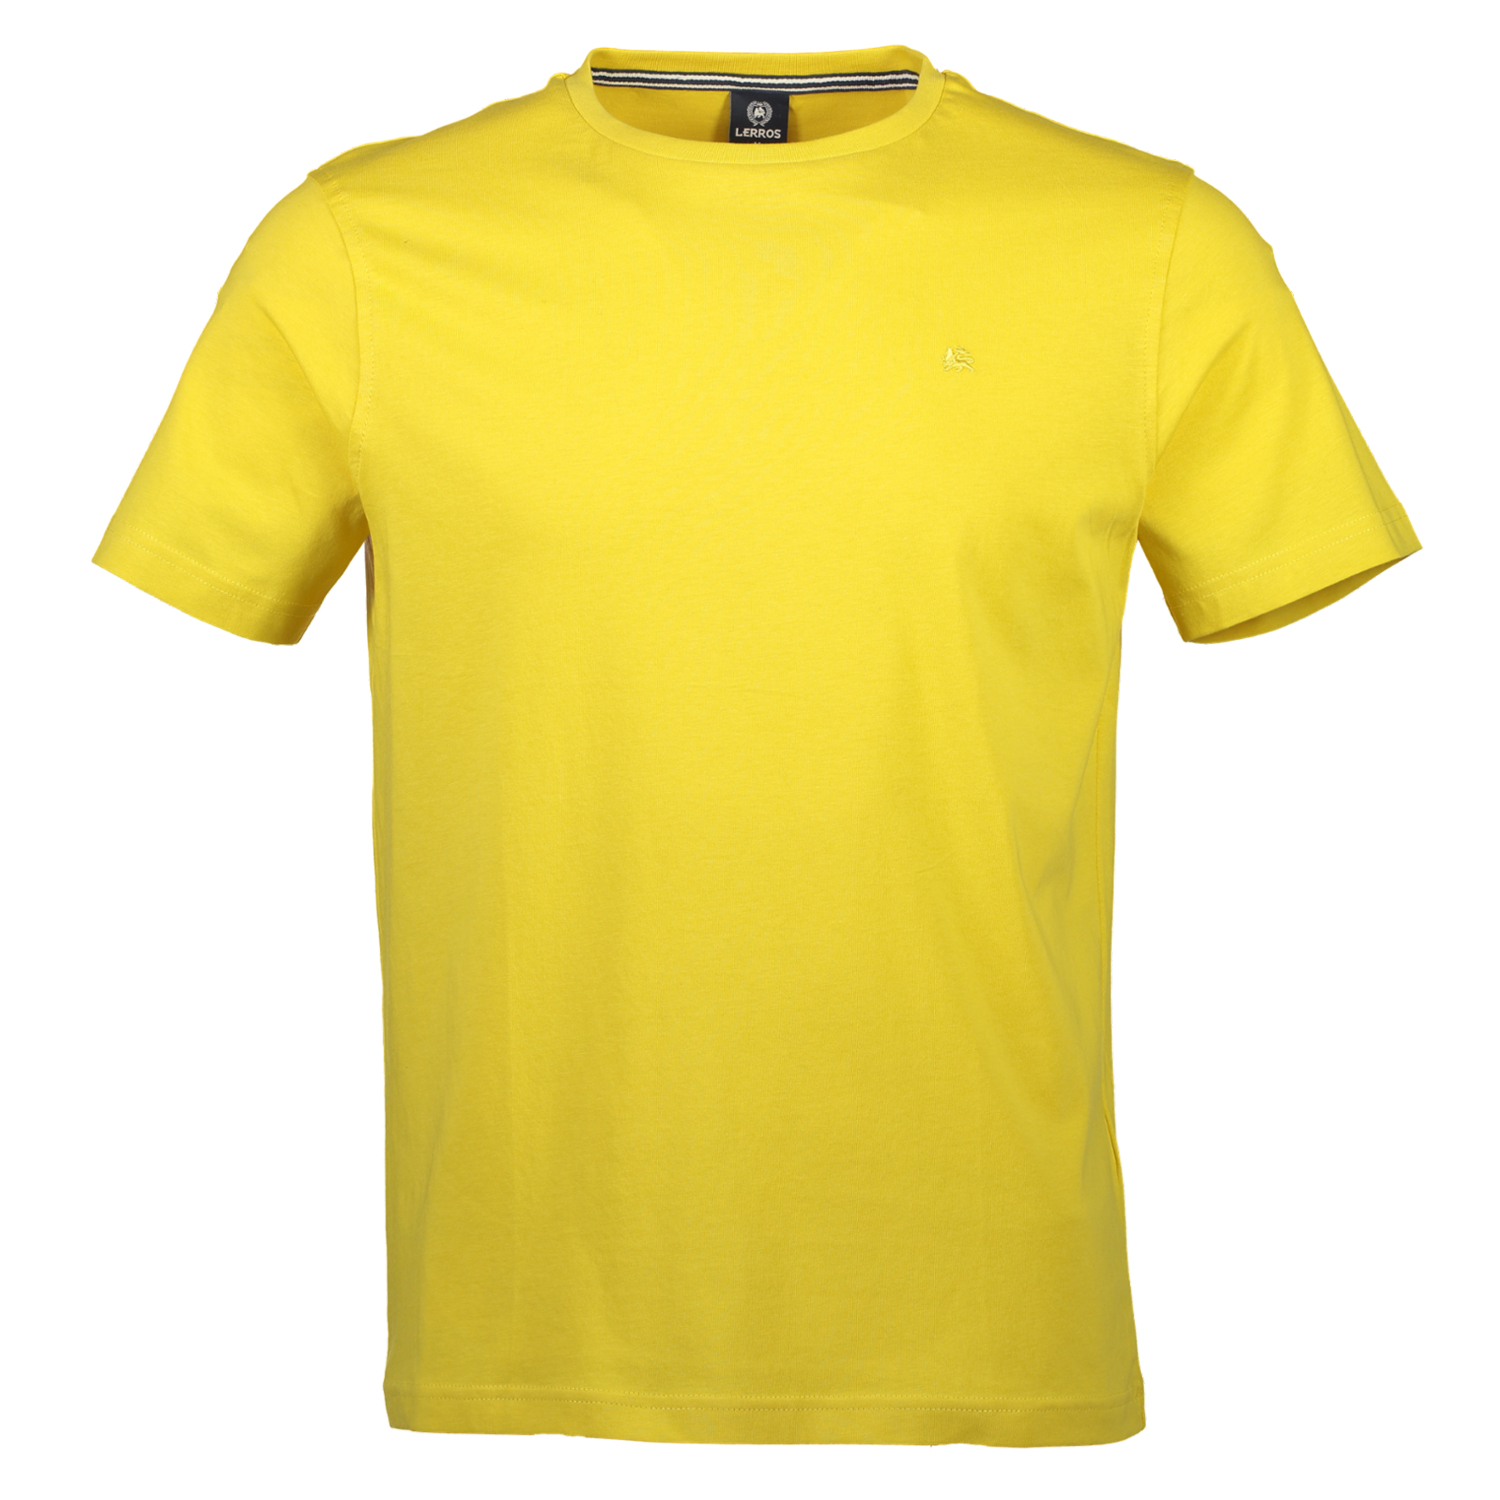 colorpic-YELLOW